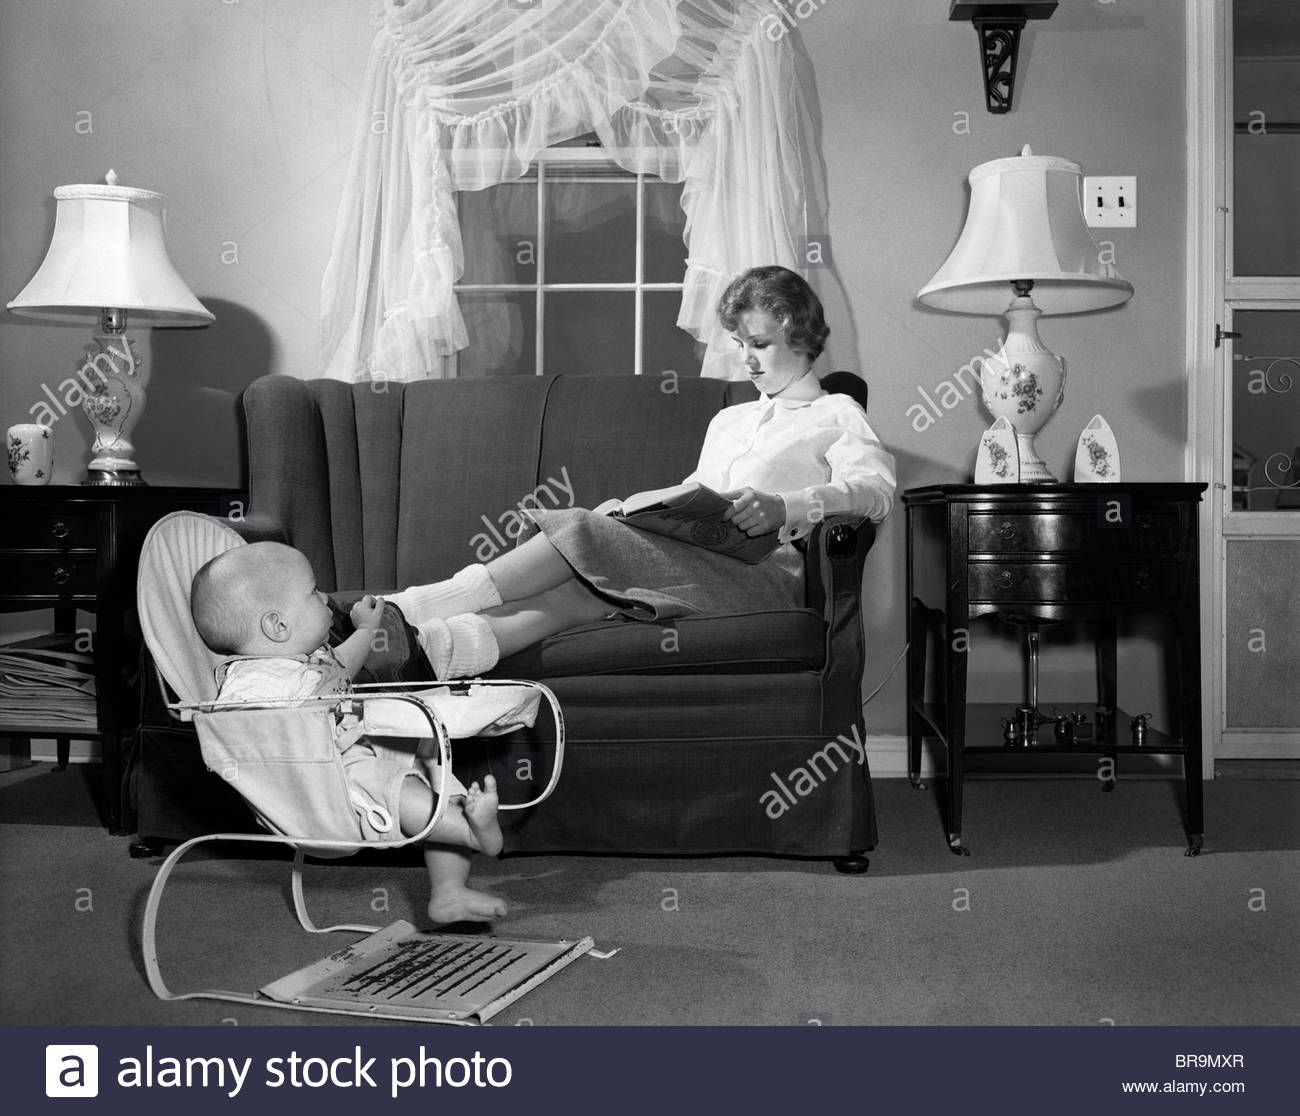 Image Result For S Sofa